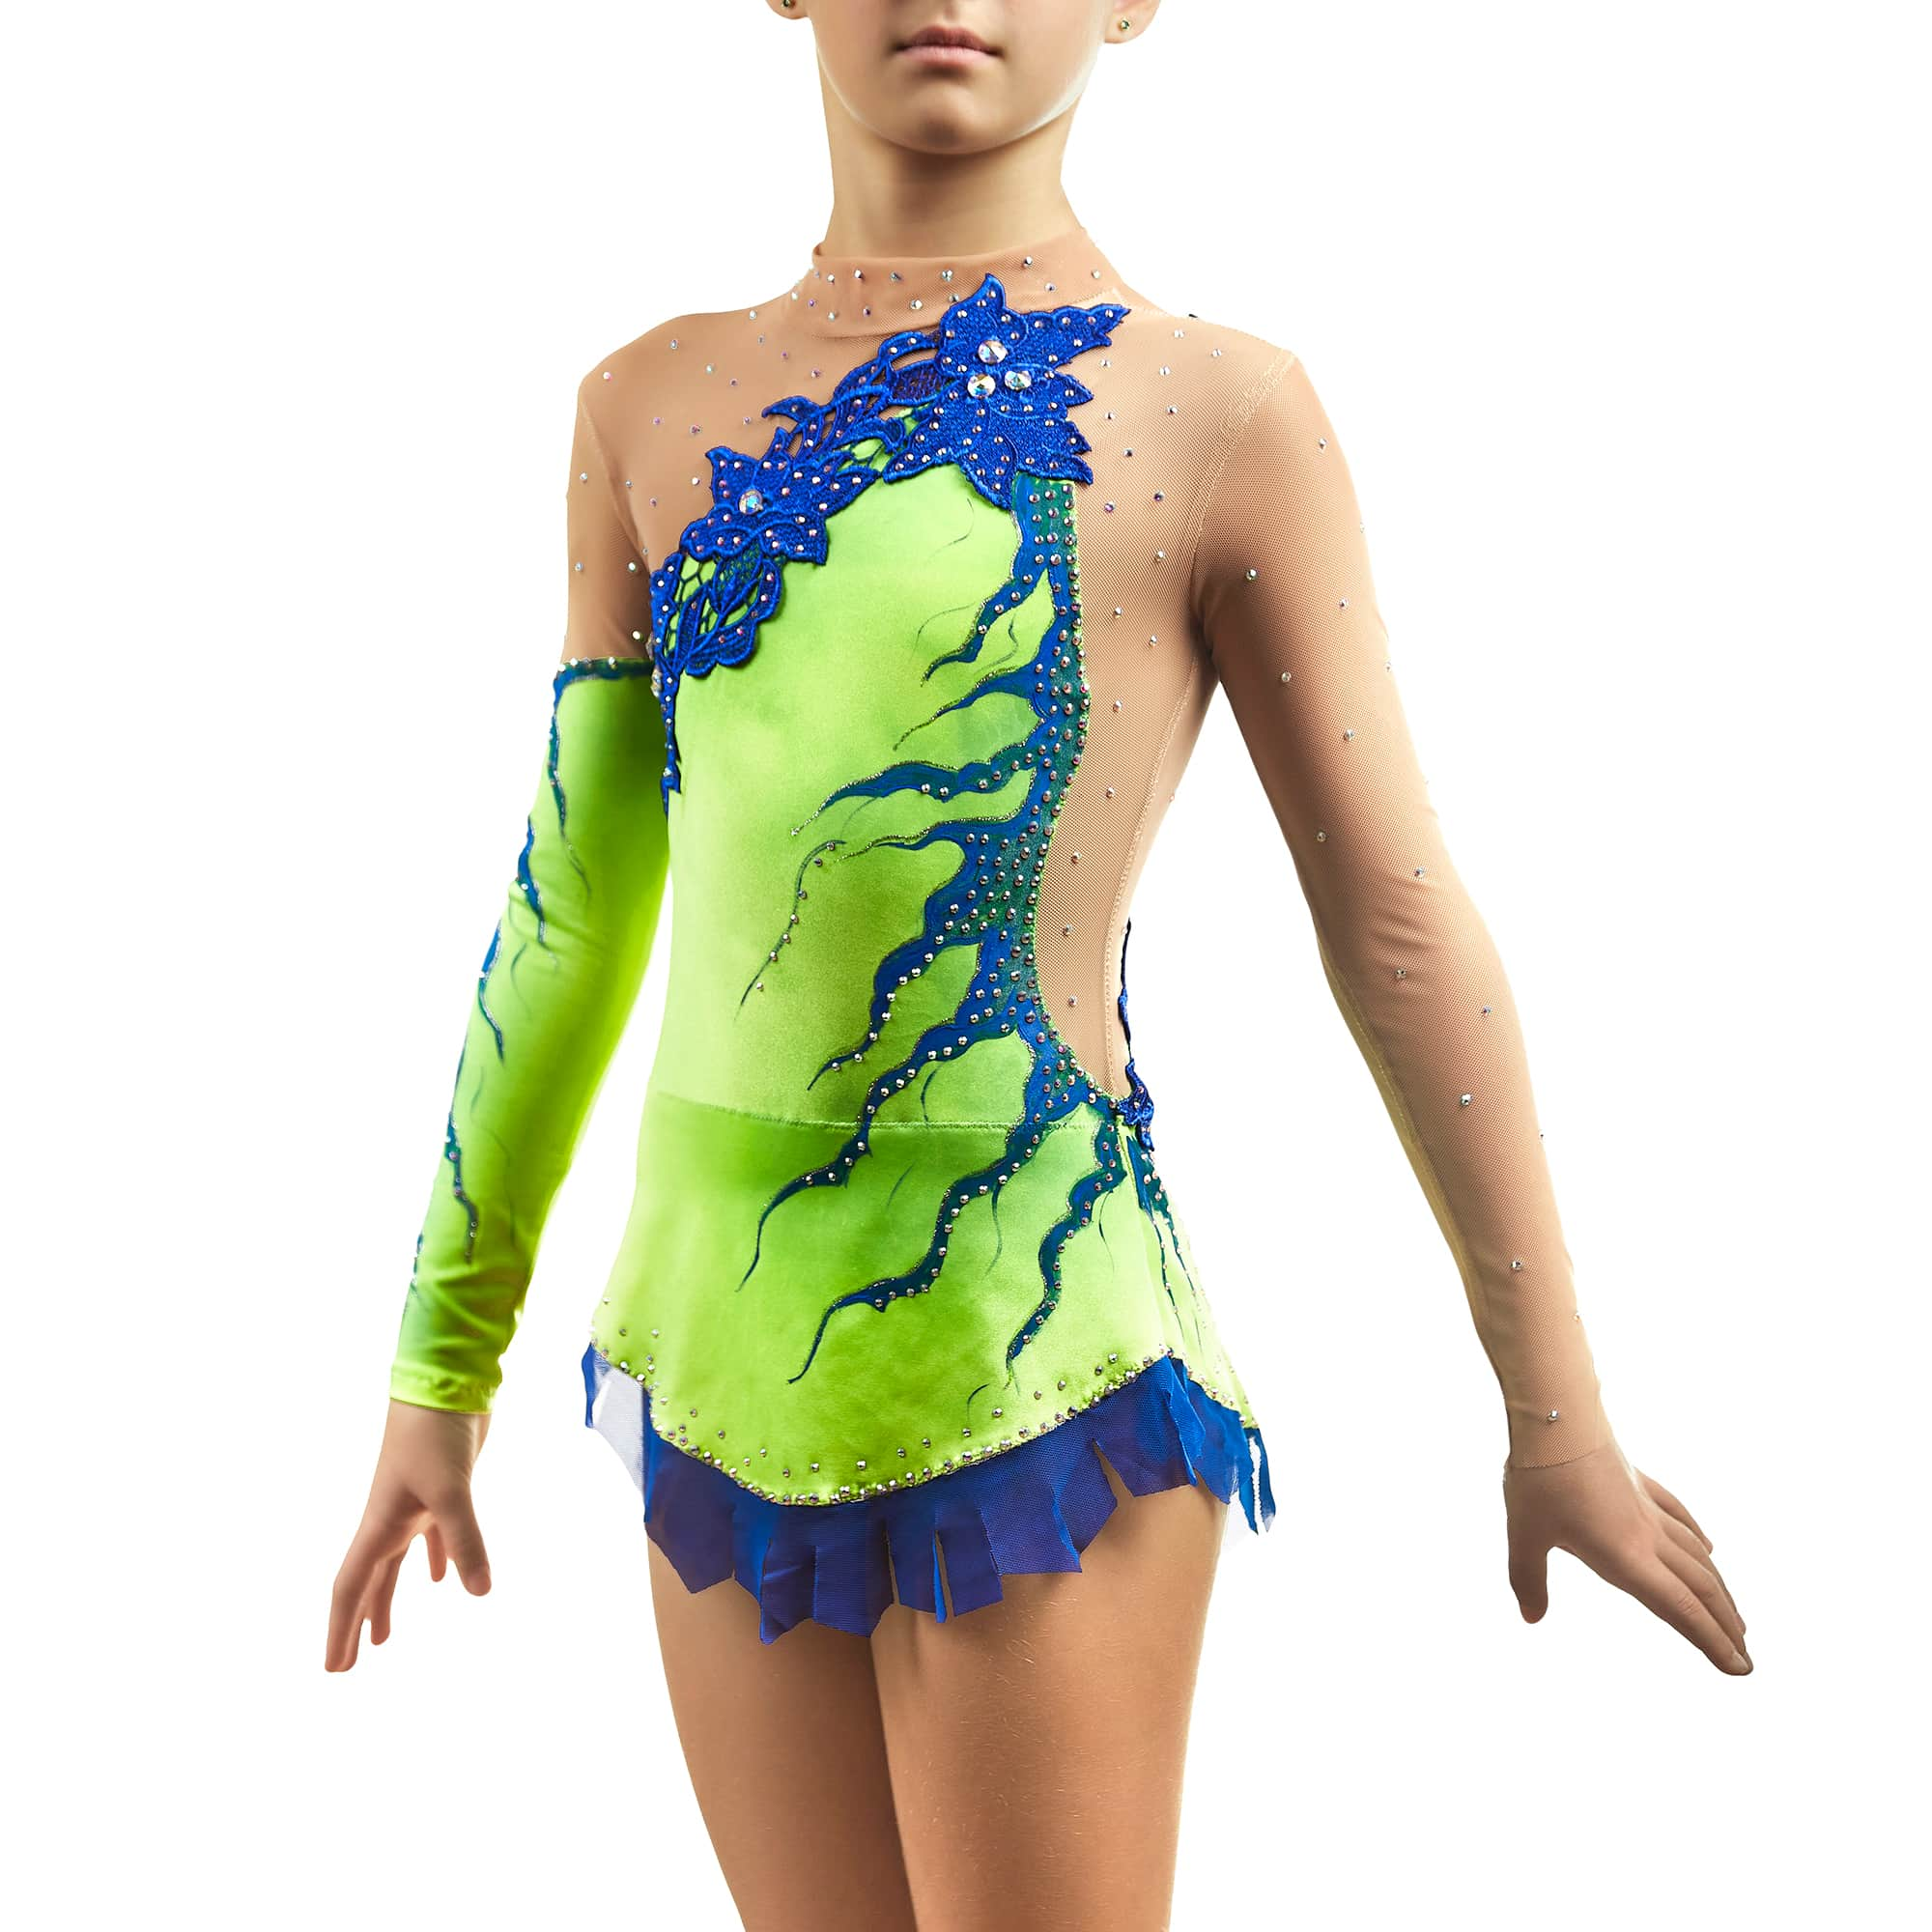 Lemon and blue circus costume № 130 with collar & sleeves